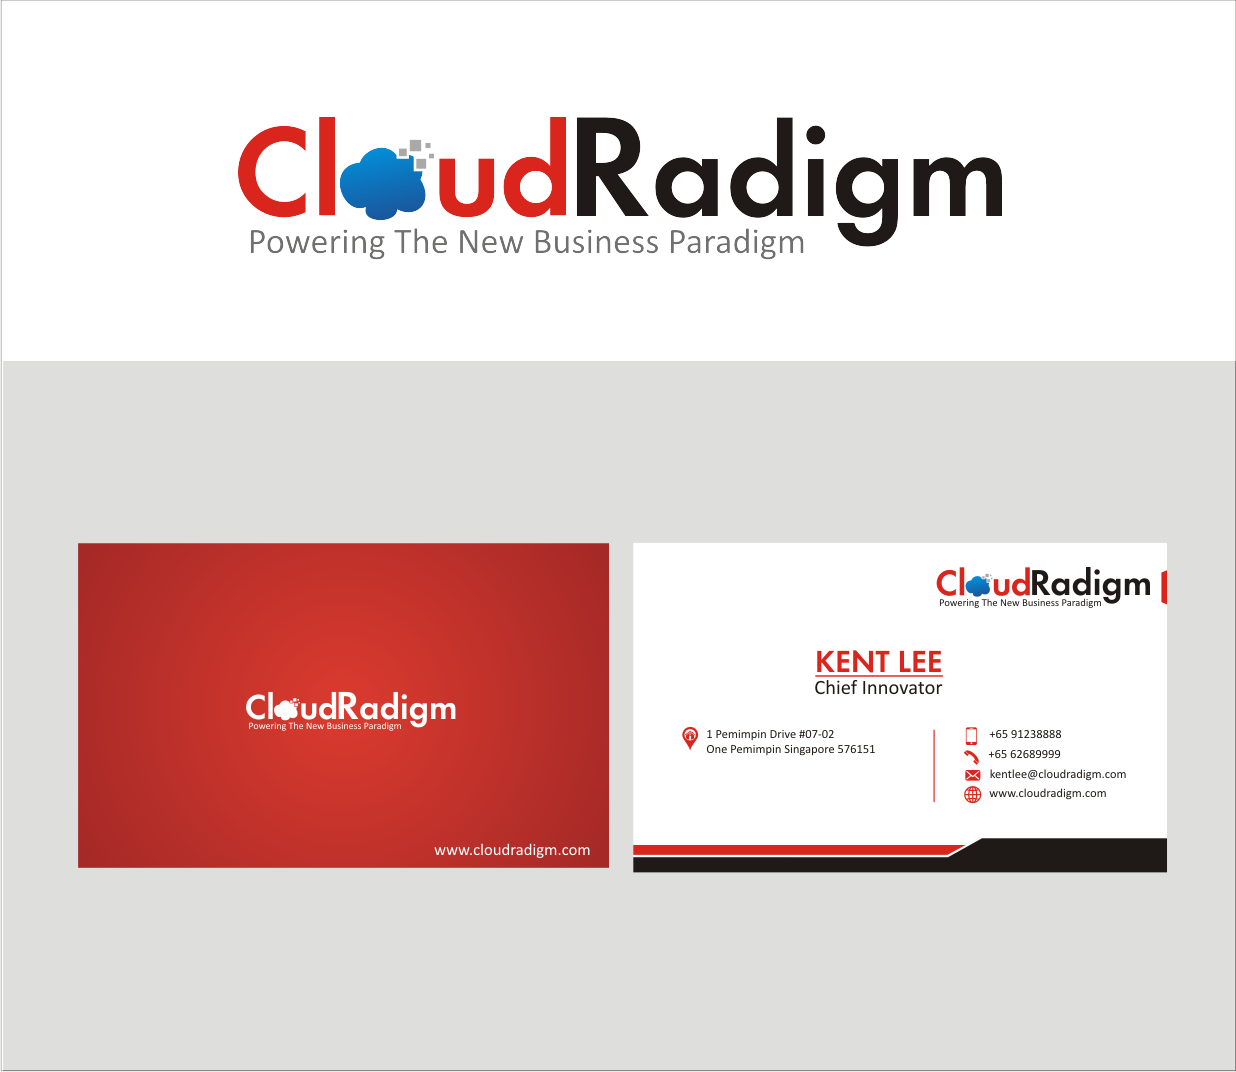 Modern professional software business card design for a company by business card design by java land for this project design 4652498 reheart Gallery